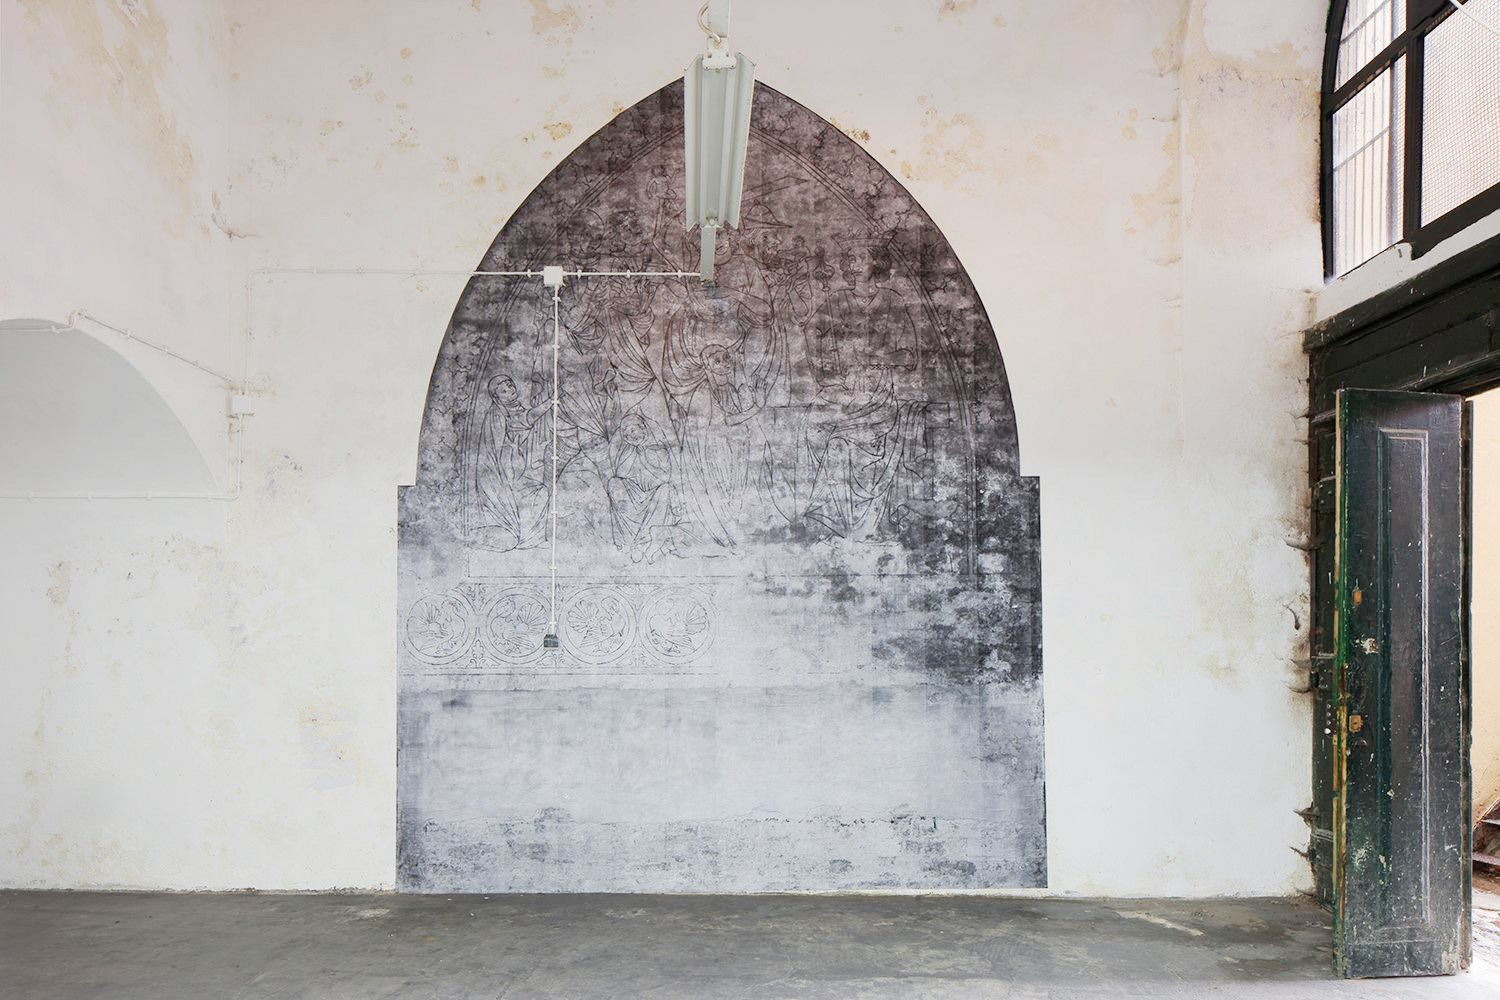 22/01 Finissage of Carlos Azeredo Mesquita Exhibition